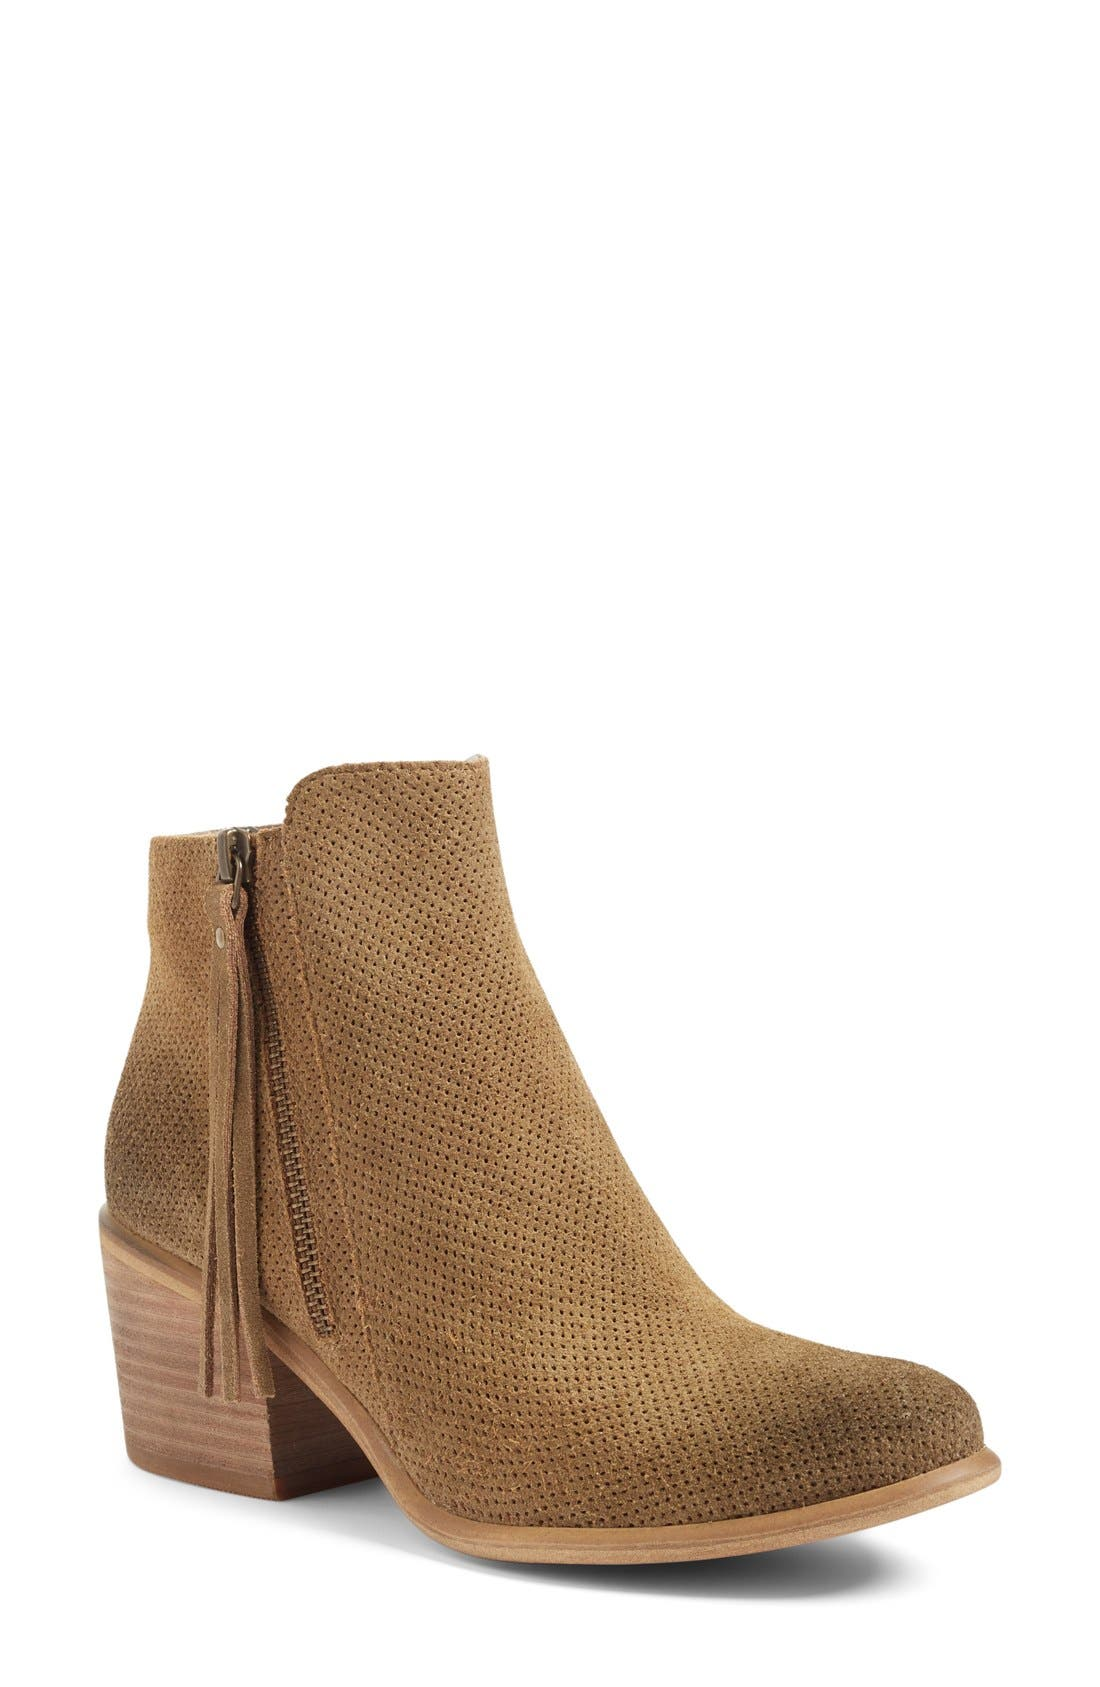 Basil Bootie,                             Main thumbnail 1, color,                             Camel Perf Suede